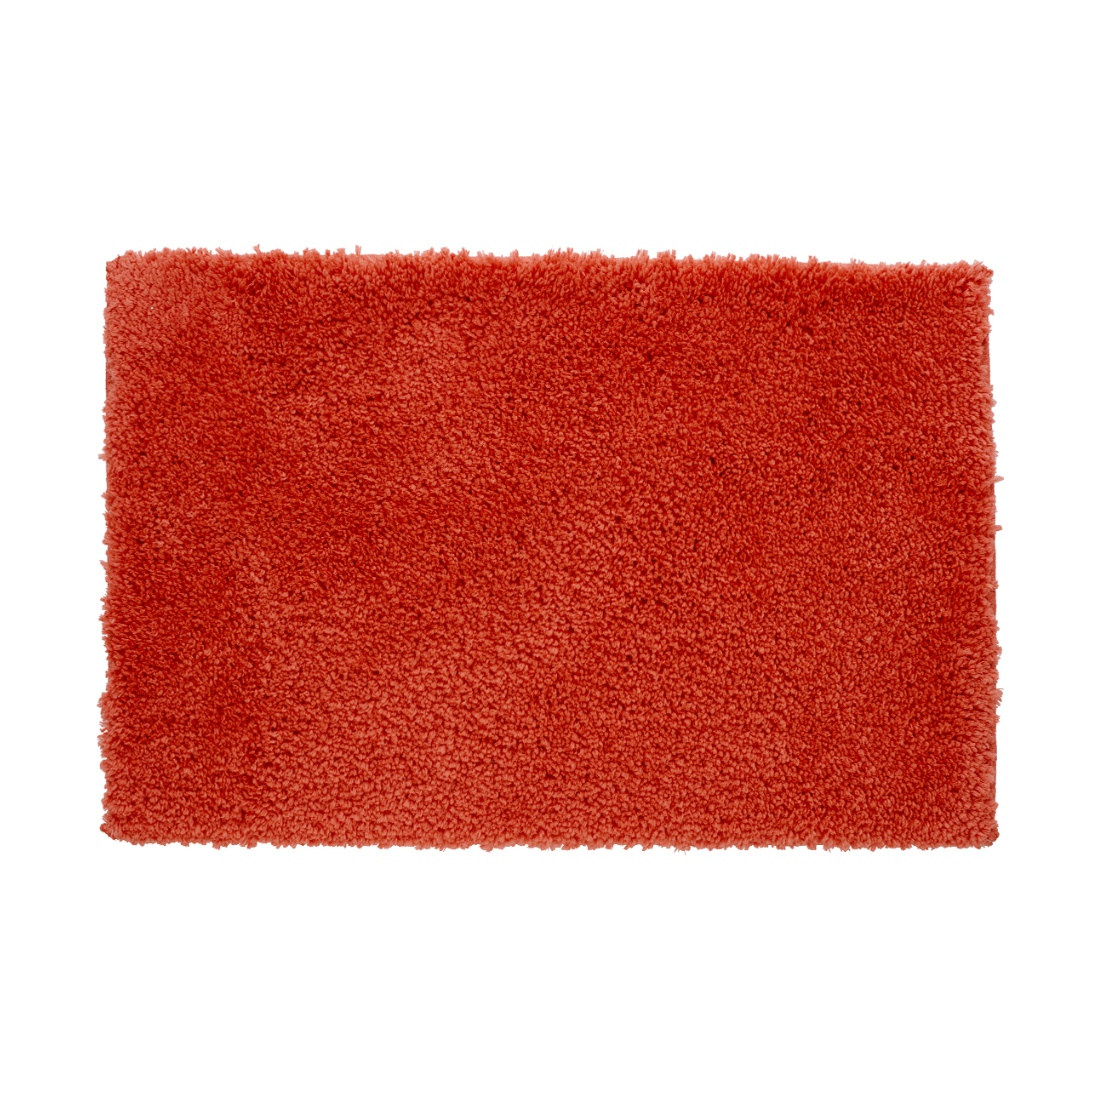 Nora Bath Mat 100% Micro Fiber 2000 Gsm Rust Micro Fibre Bath Mats in Rust Colour by Living Essence